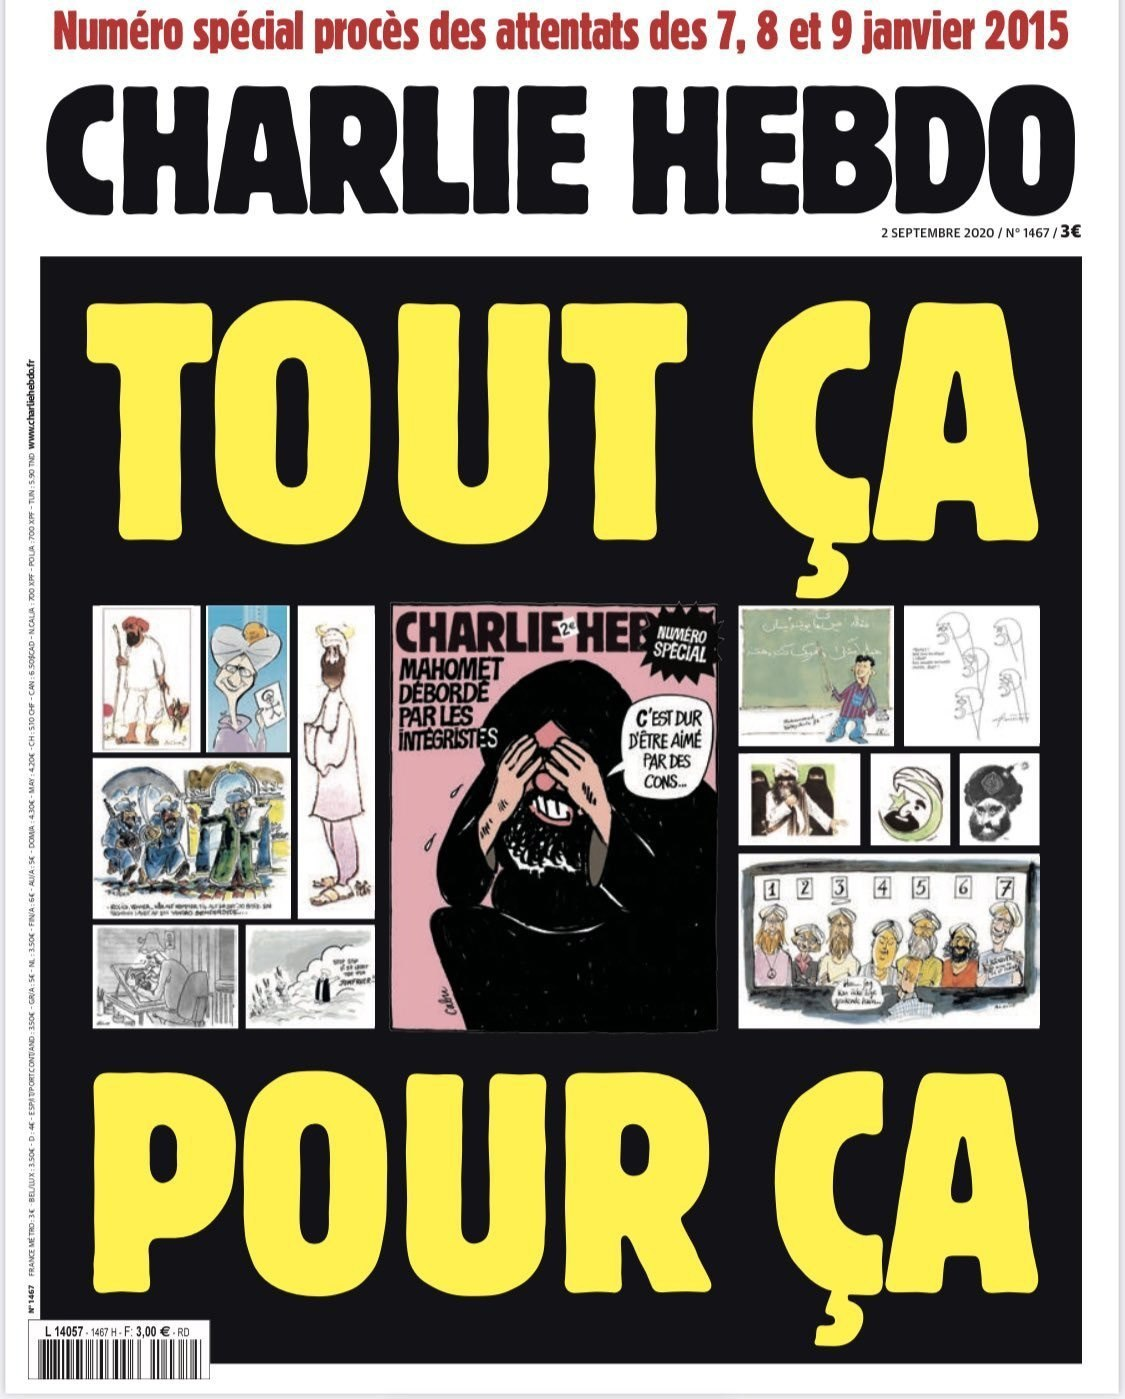 Charlie Hebdo Republishes The Cartoons Of Muhammad For Which The Jihadists Attacked We Will Never Give In Teller Report